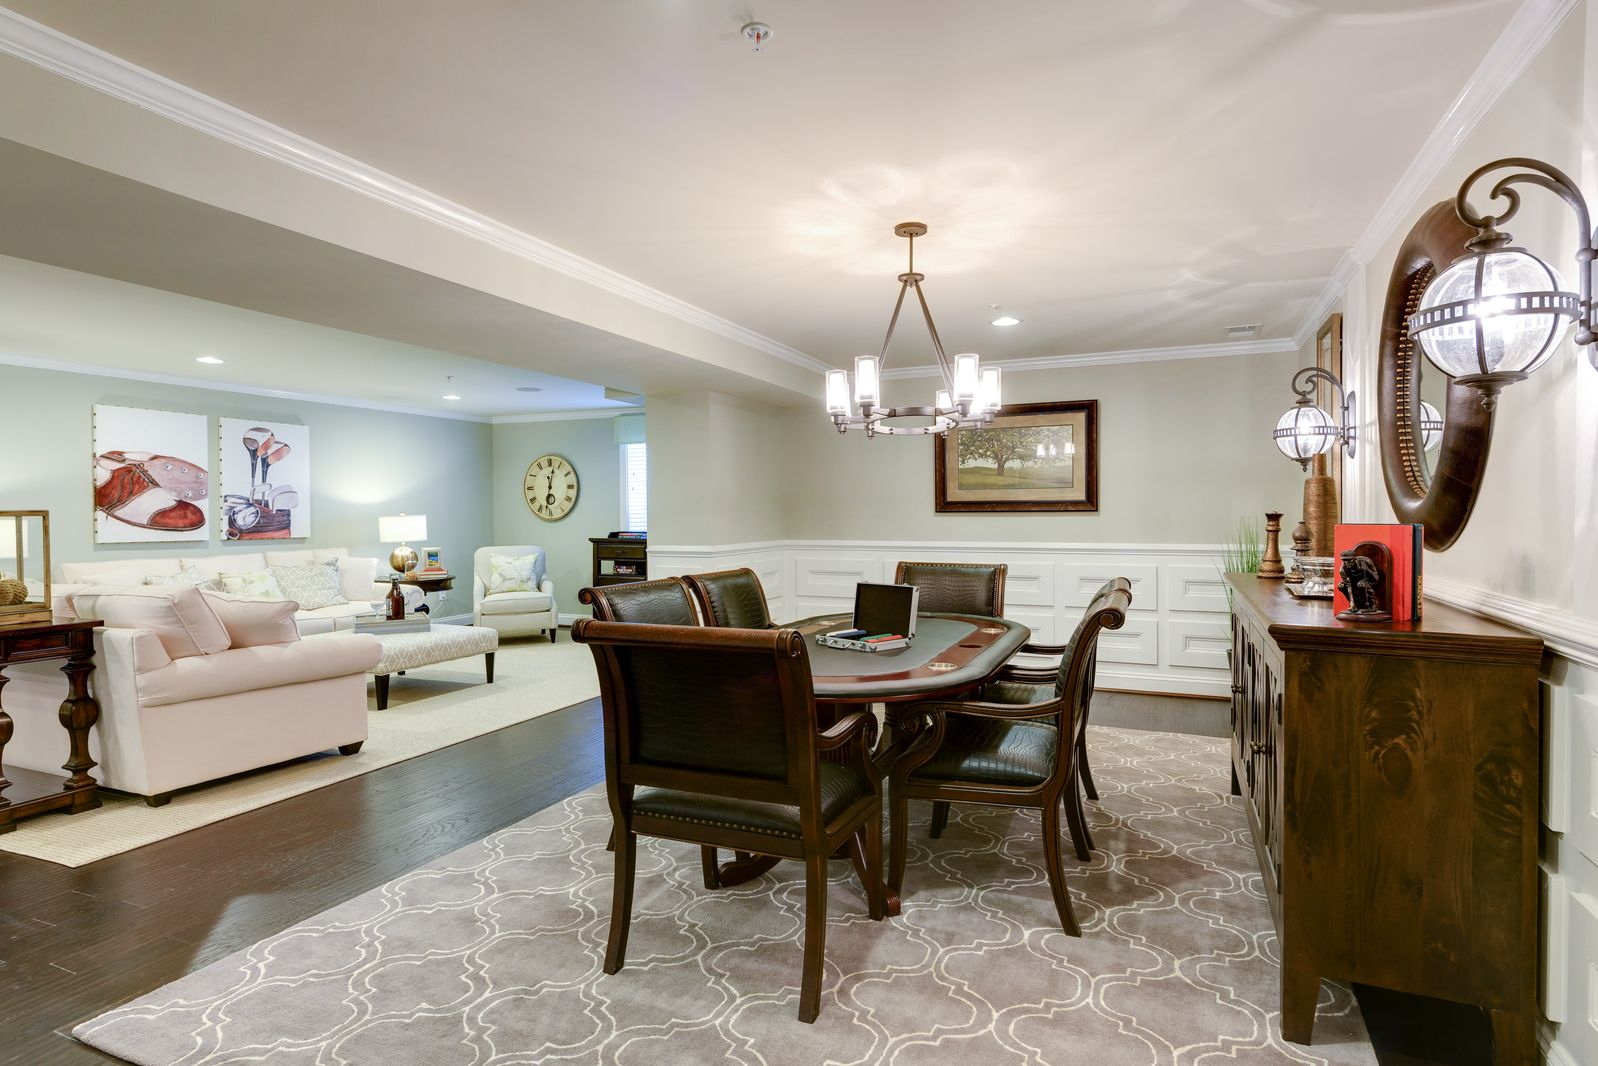 Living Area featured in the Griffin Hall By Ryan Homes in Philadelphia, PA